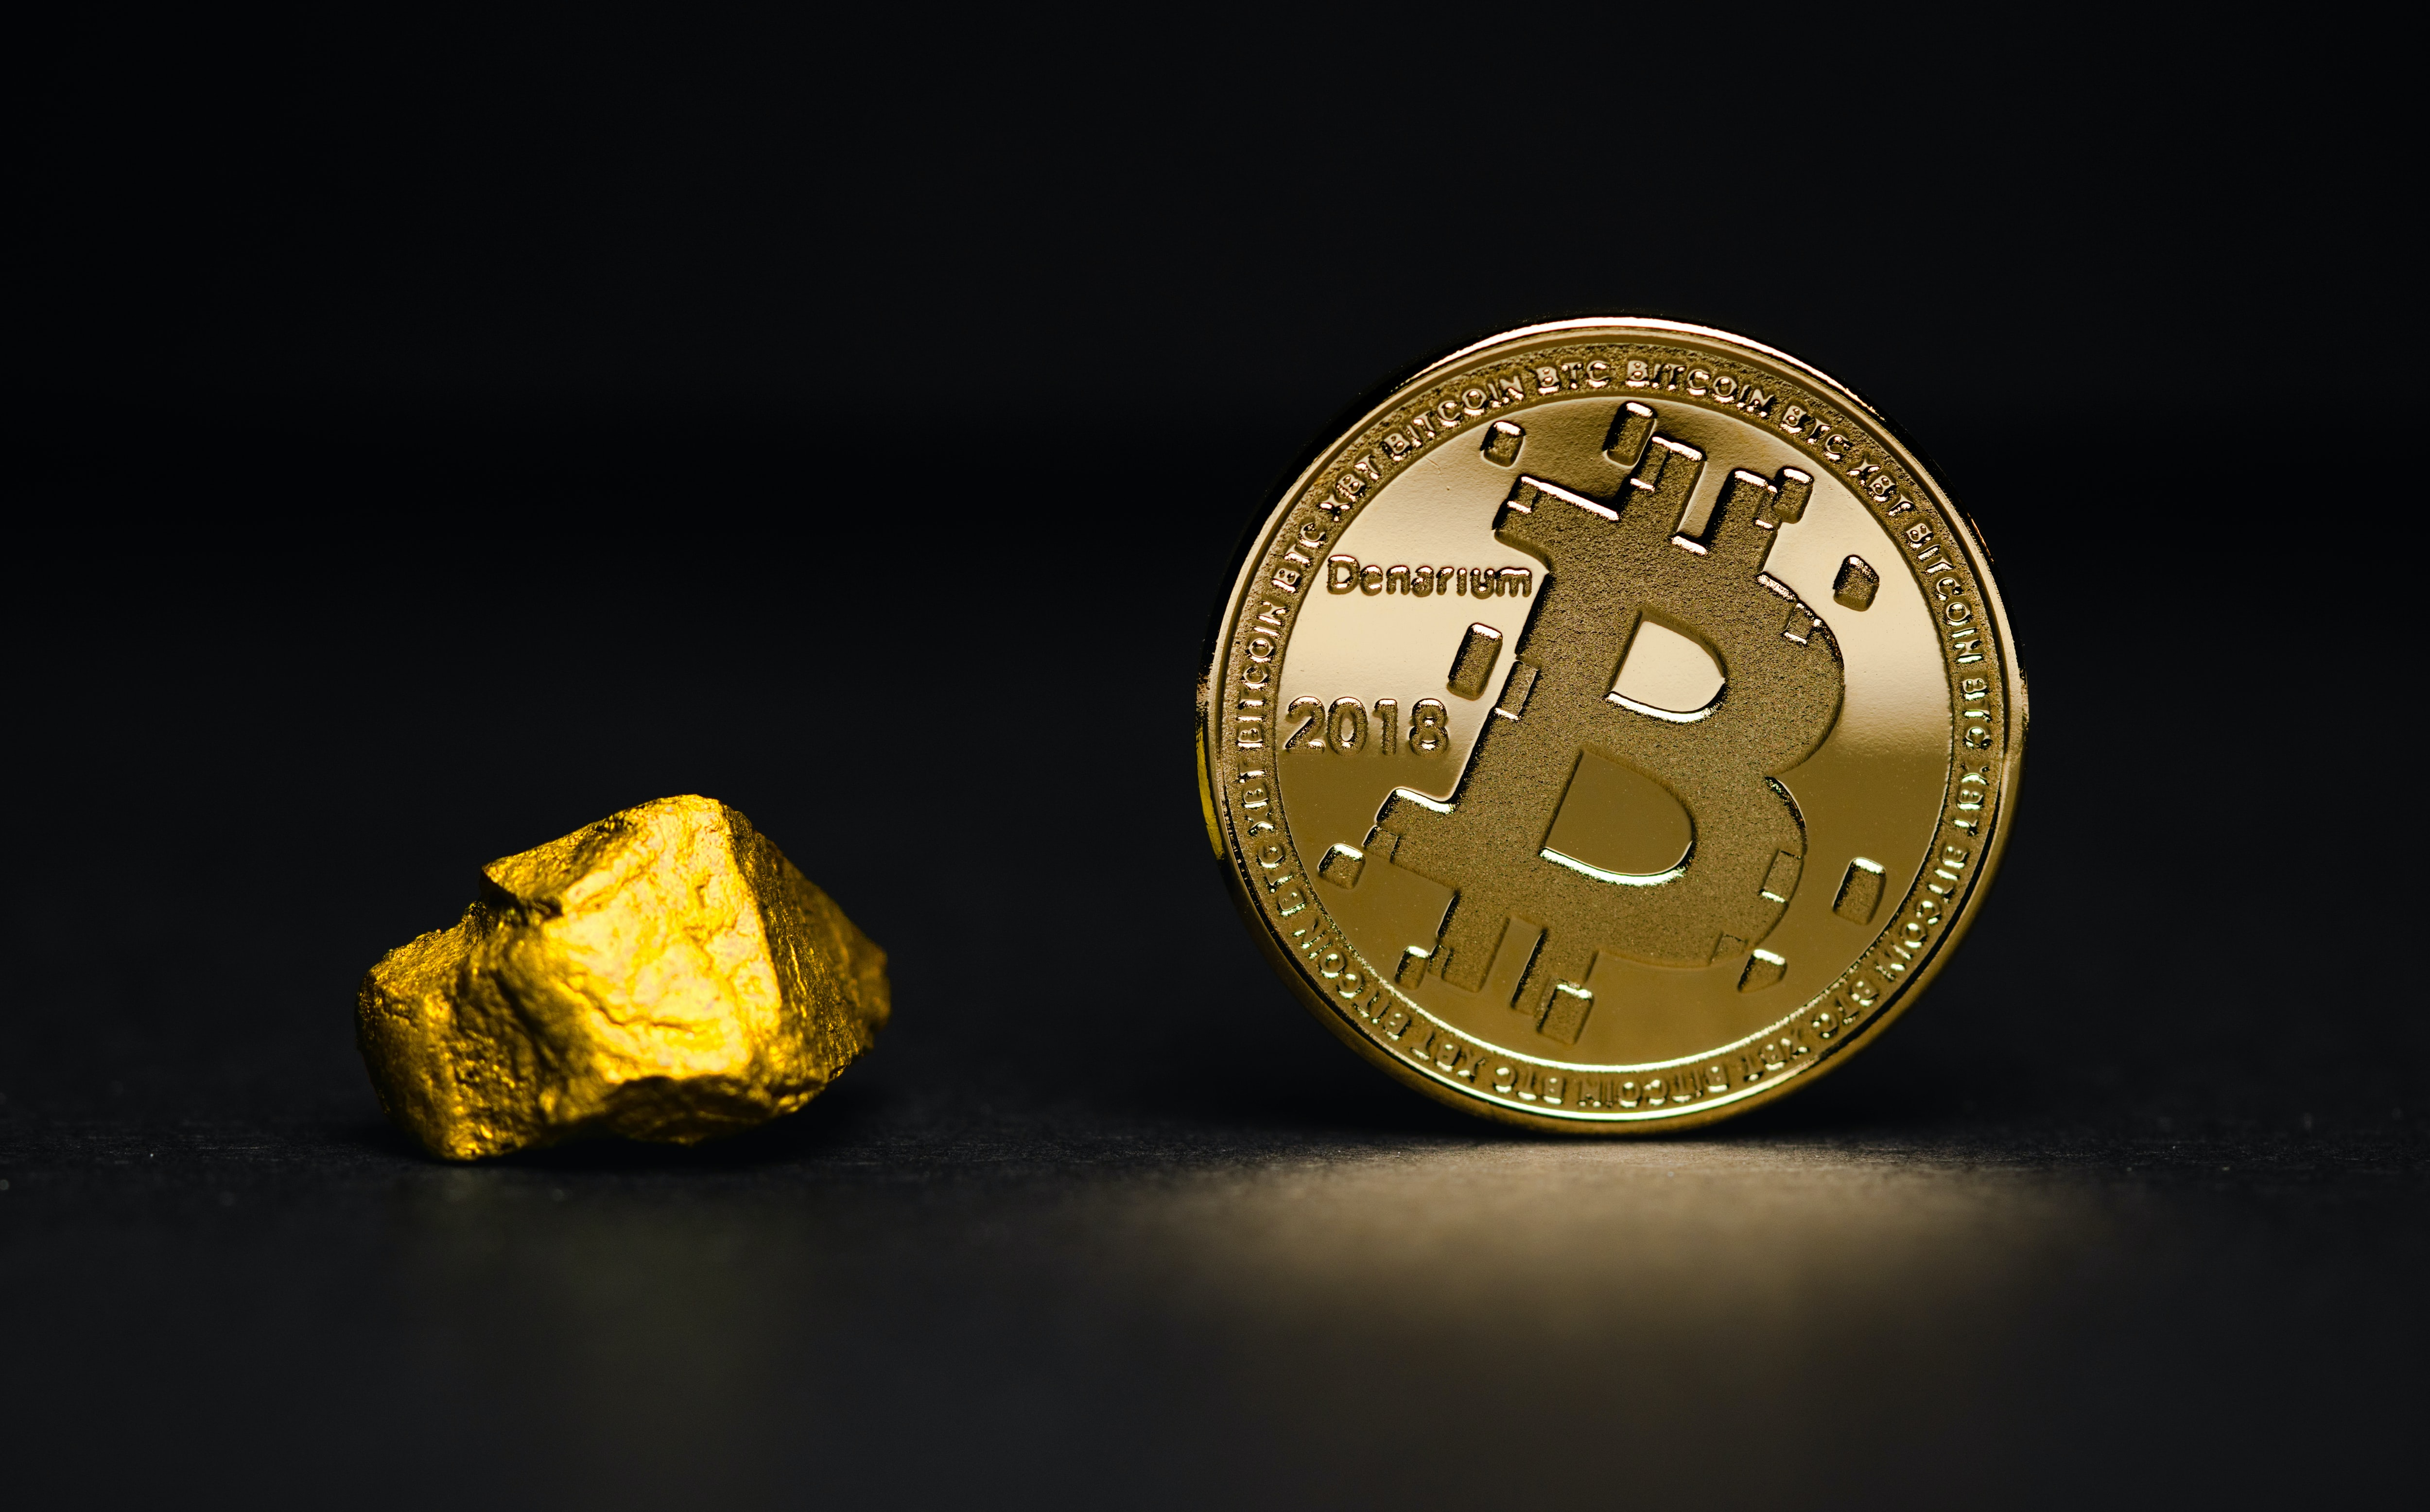 Bitcoin and traditional assets, can there be an ideal mix for ones portfolio?